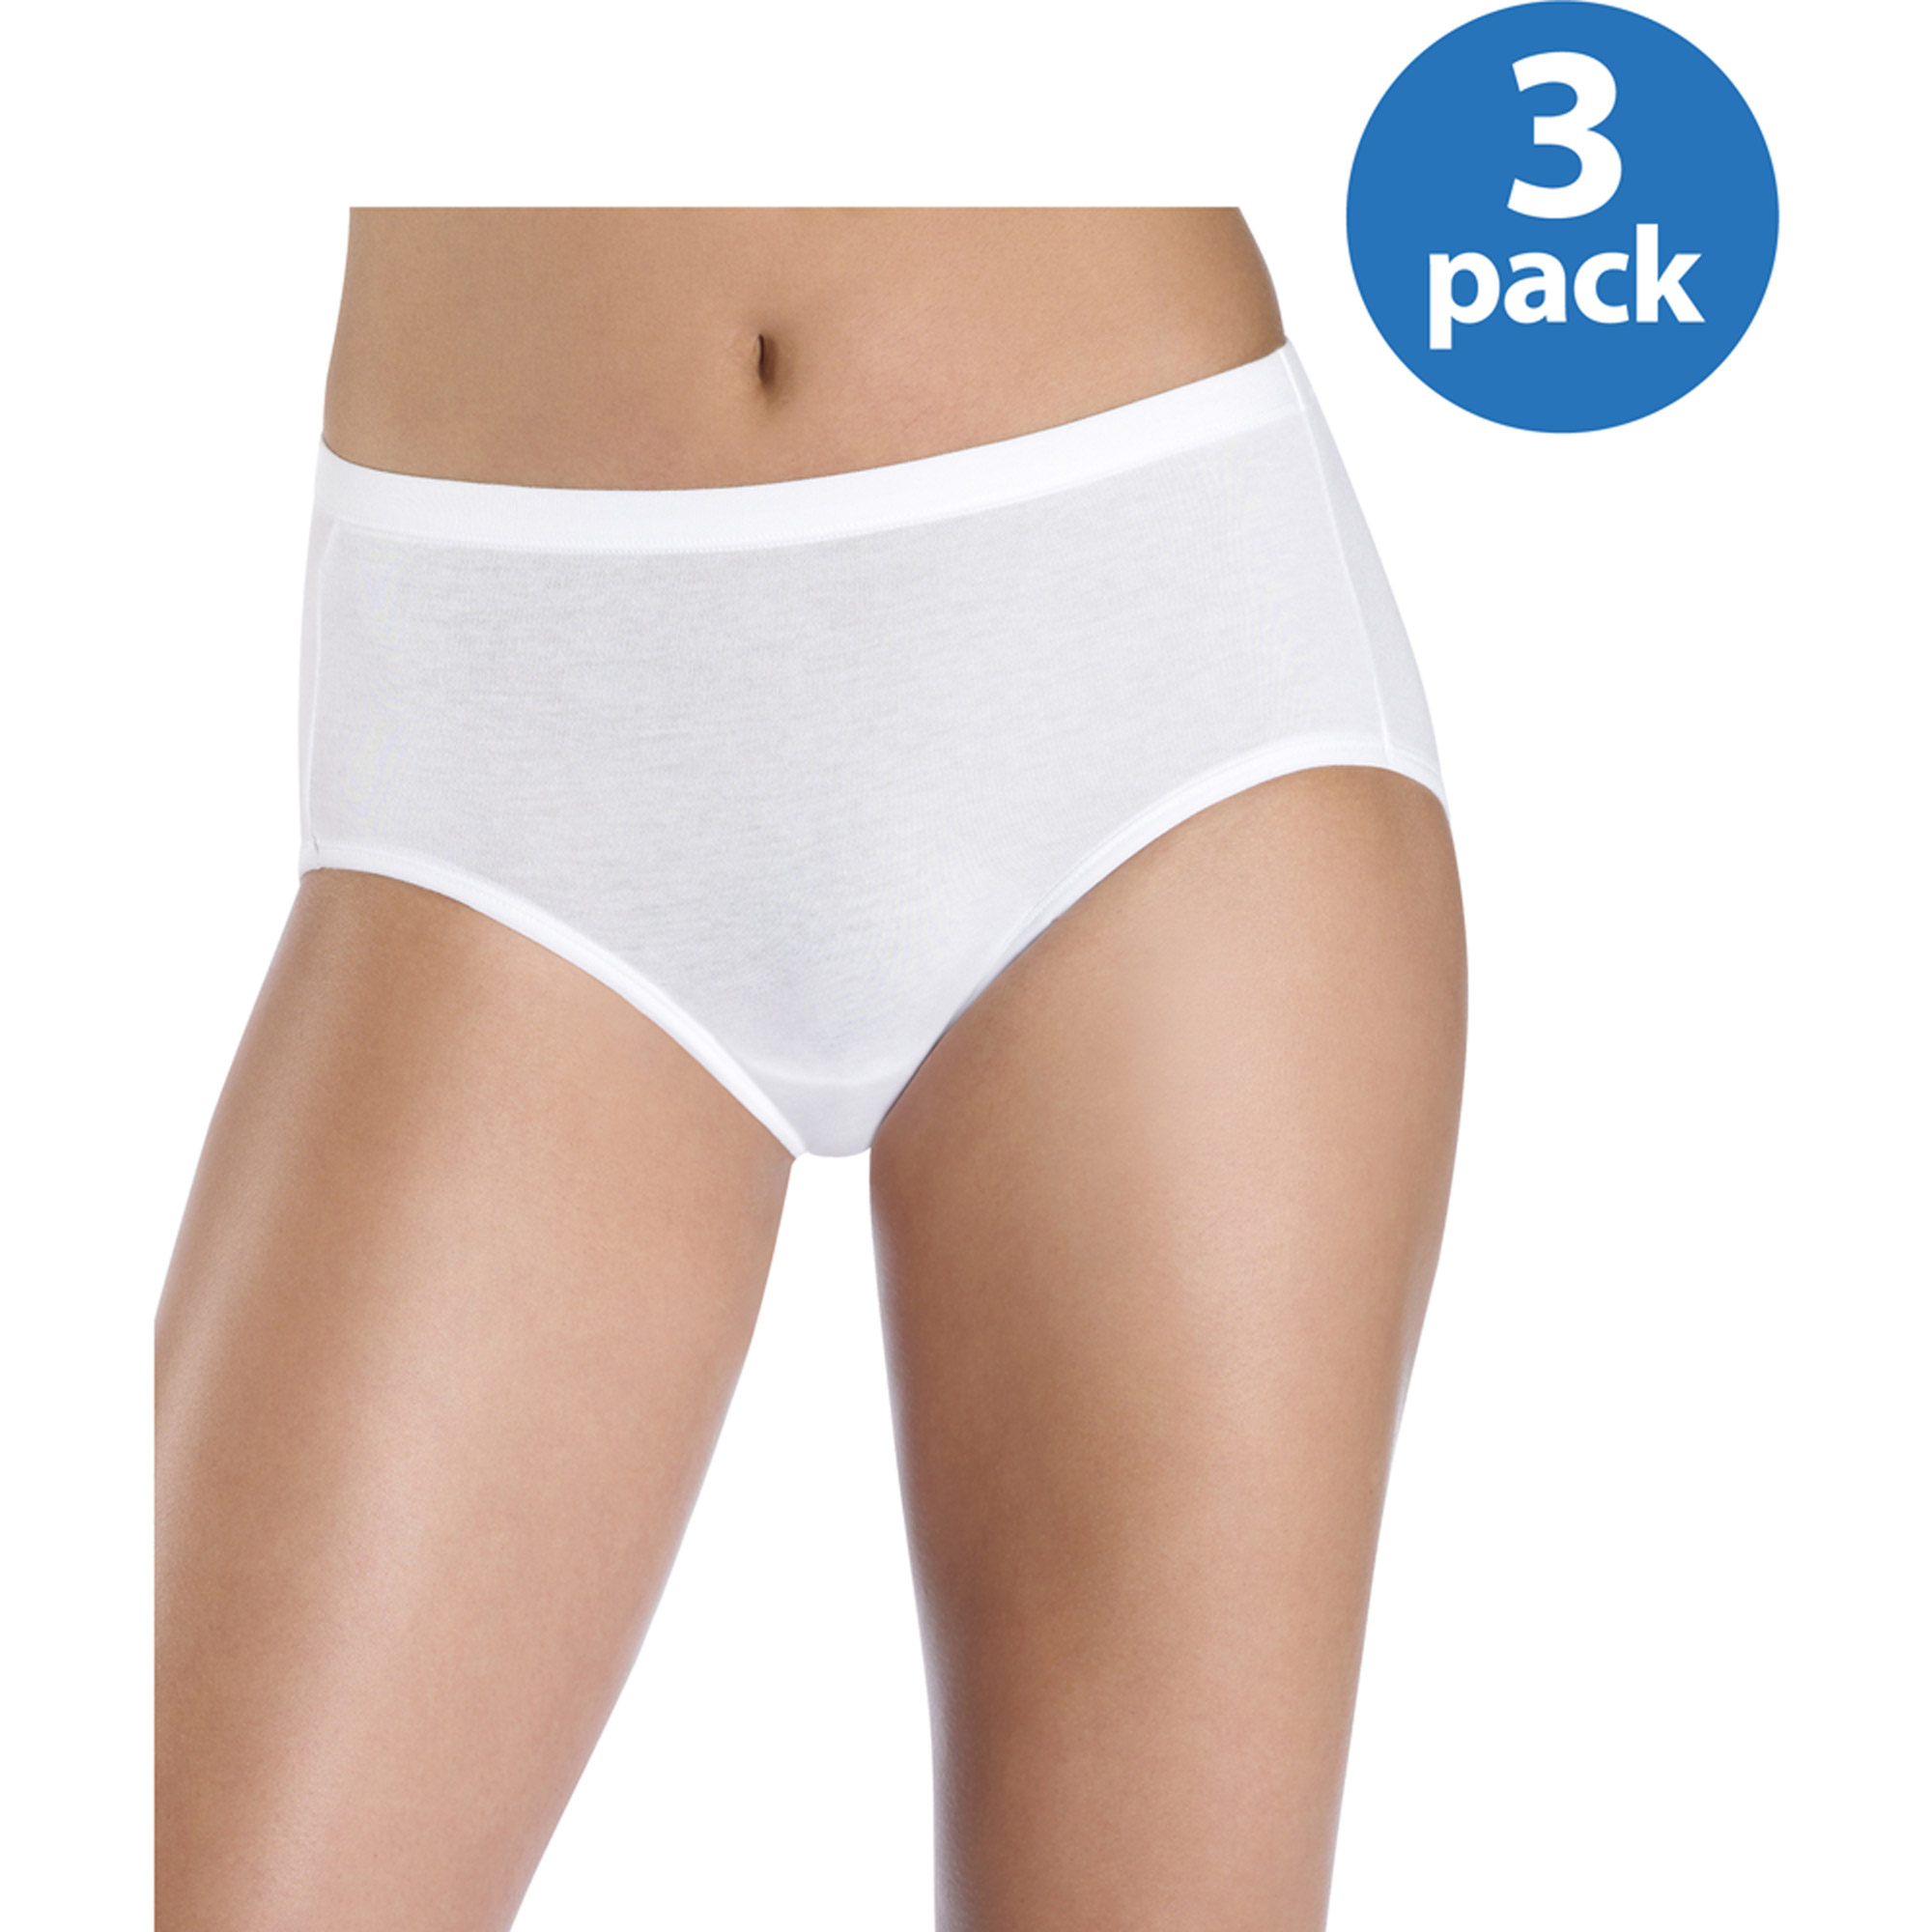 Hanes Women's ComfortSoft Waistband Low Rise Brief Panties 3-Pack